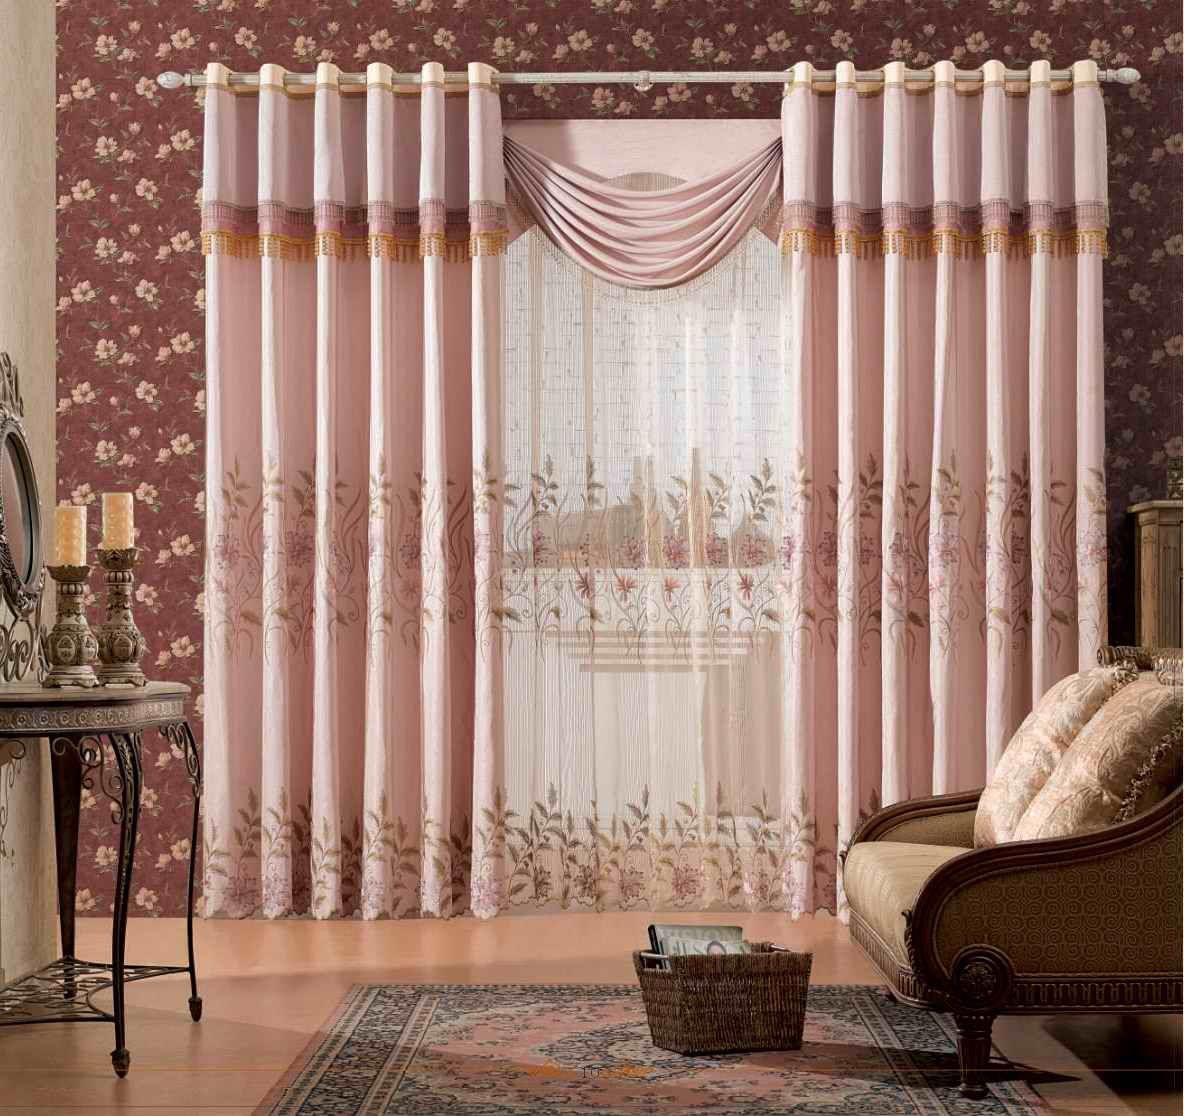 Living Room Curtains Designs Adorable Top 22 Curtain Designs For Living Room  European Style Beautiful Design Inspiration